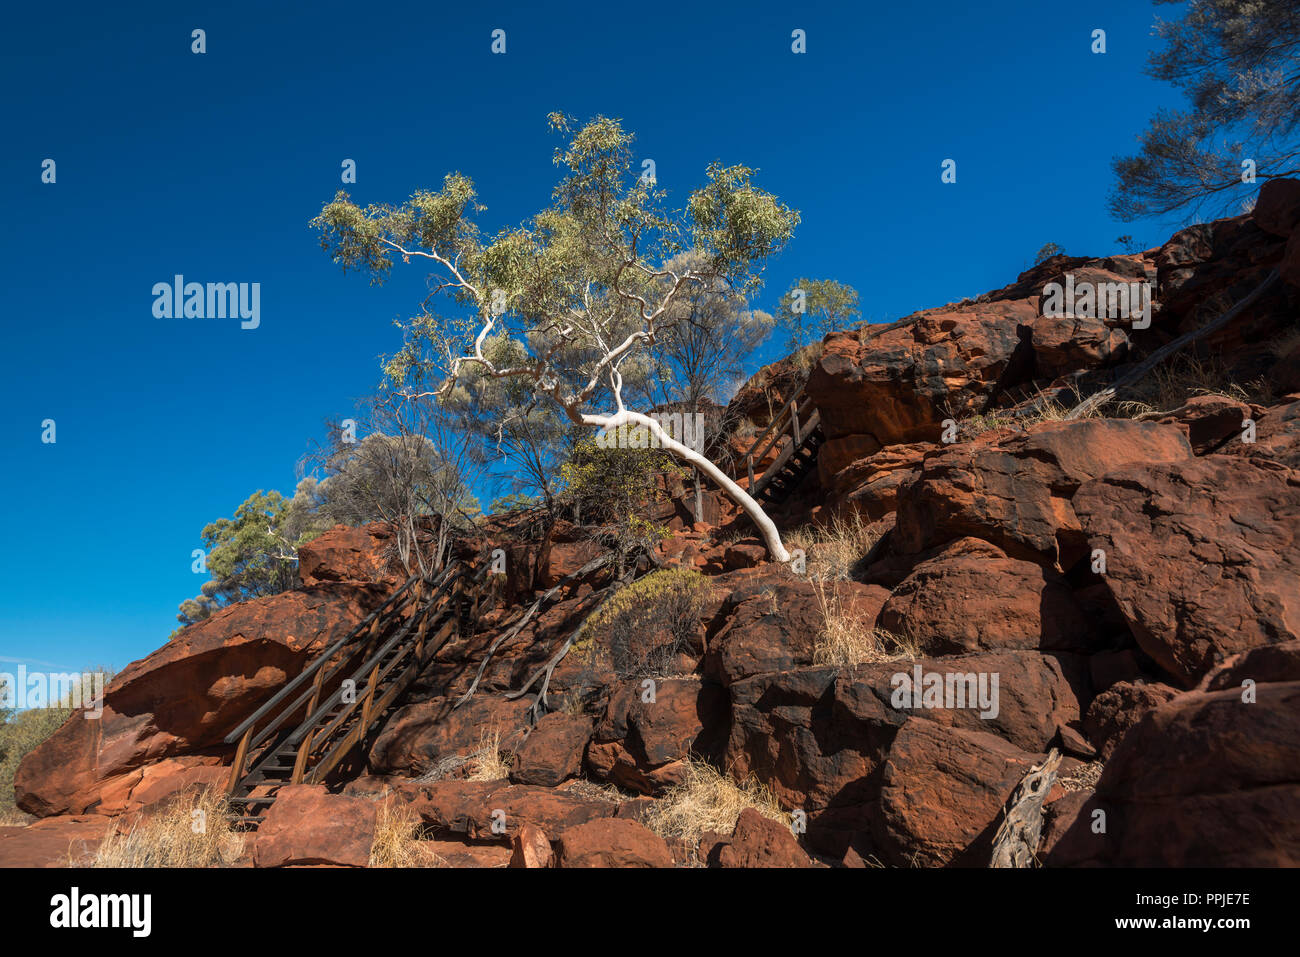 Palm Valley,  MacDonnell Ranges, Nothern Territory, Australia - Stock Image